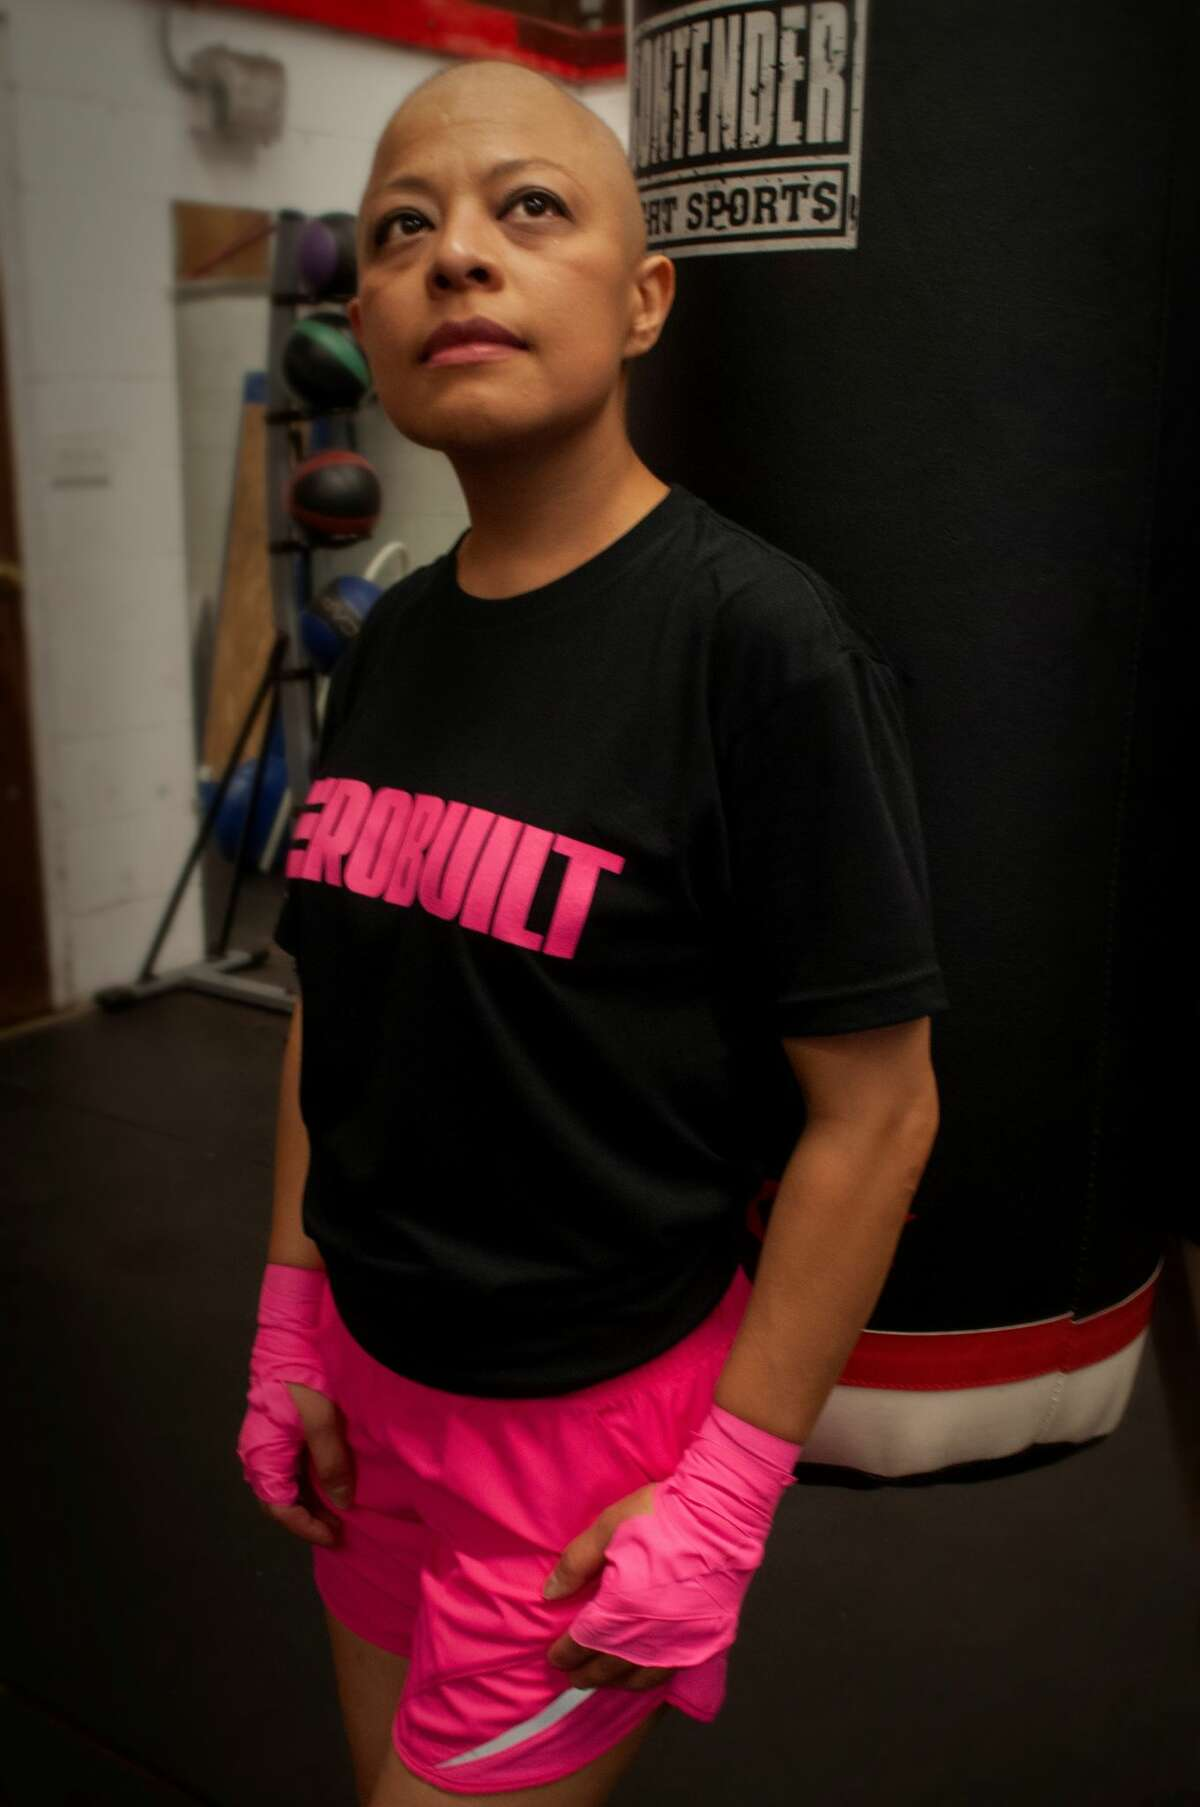 Zulia Mejia was inspired to do this photoshoot with the encouragement of Hector Martinez of Herobuilt.